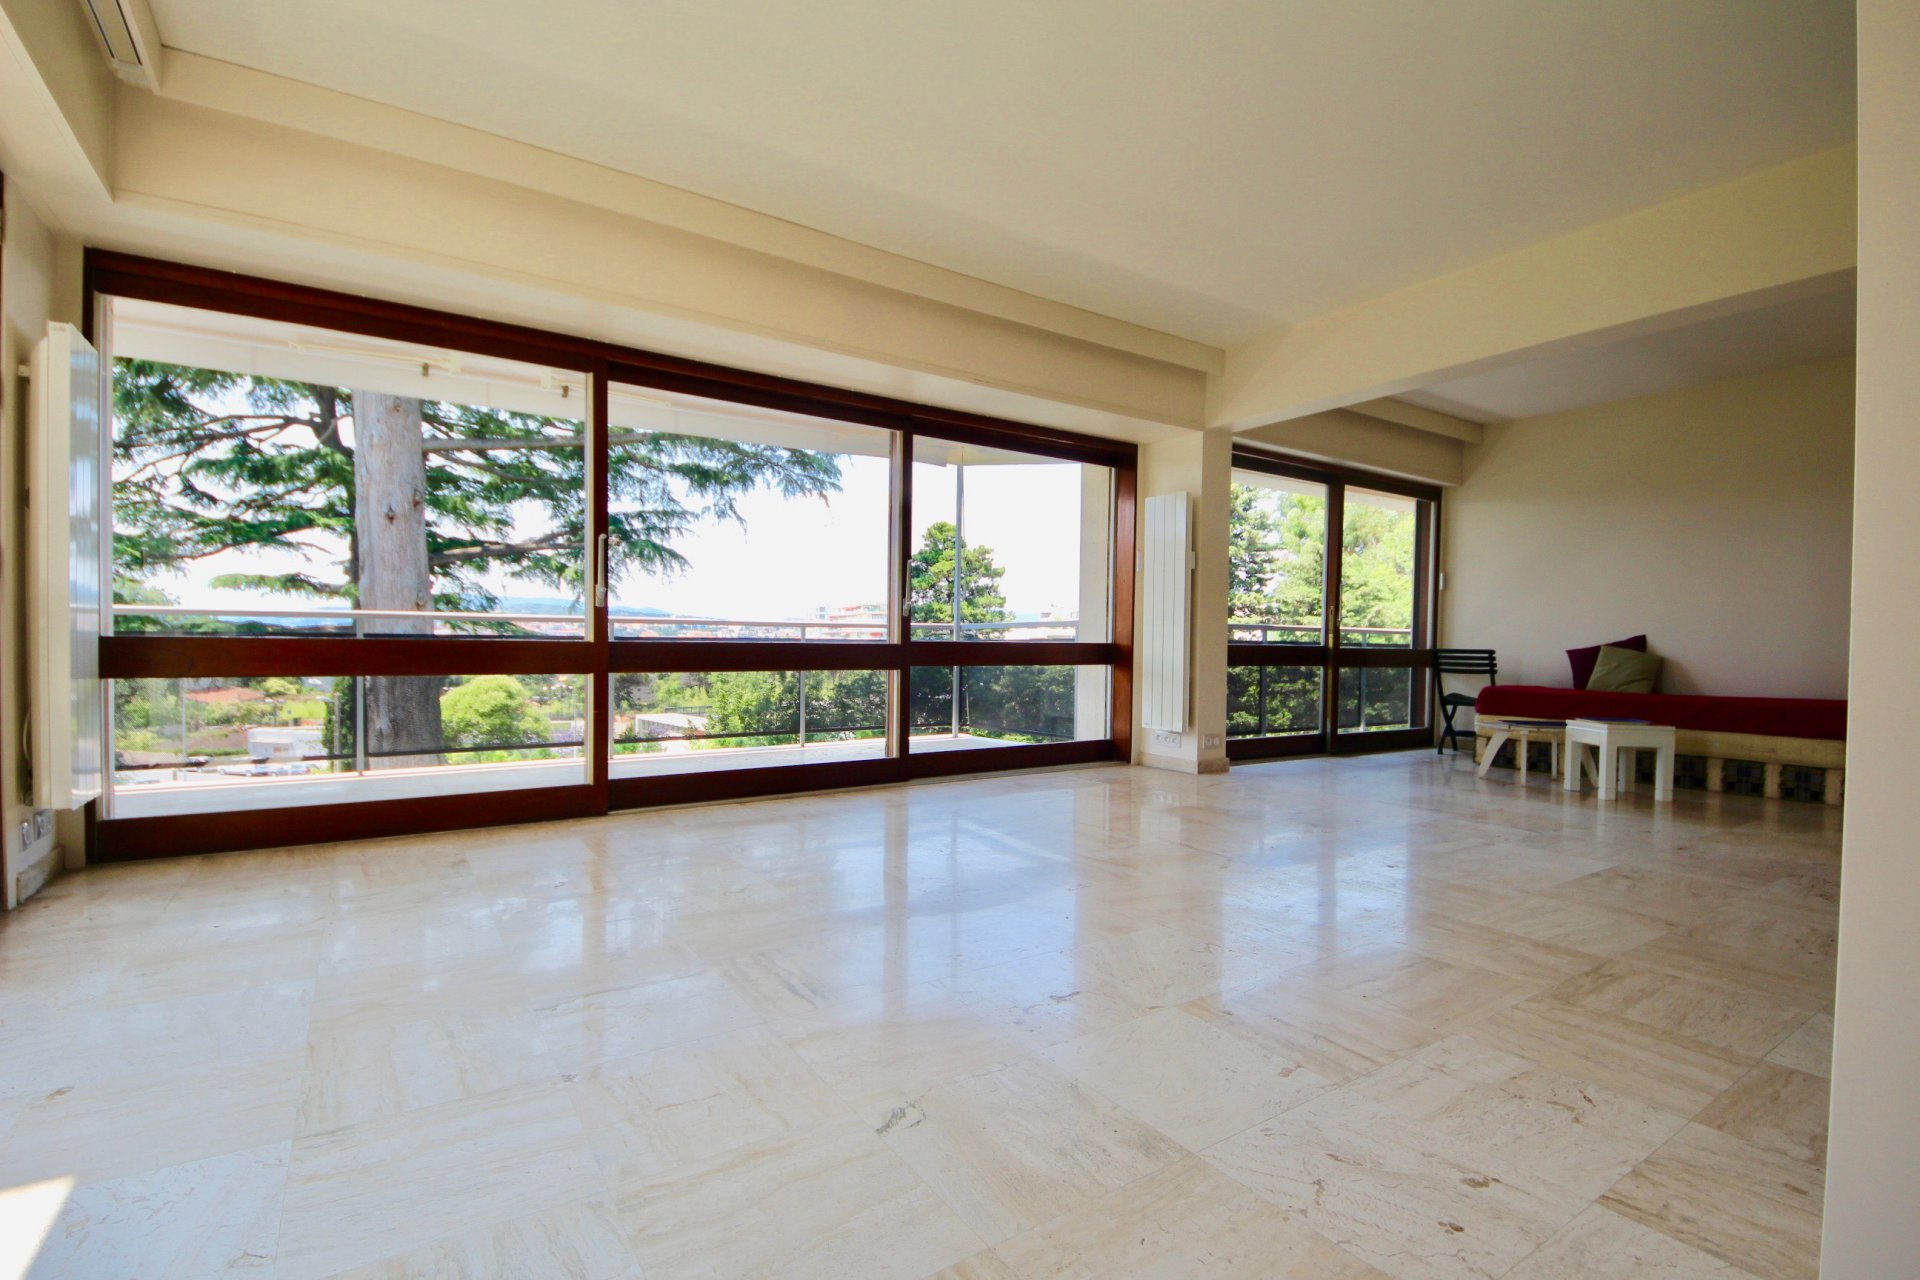 Montfleury- Nice apartment 2 bedroom 115 sqm with terrace